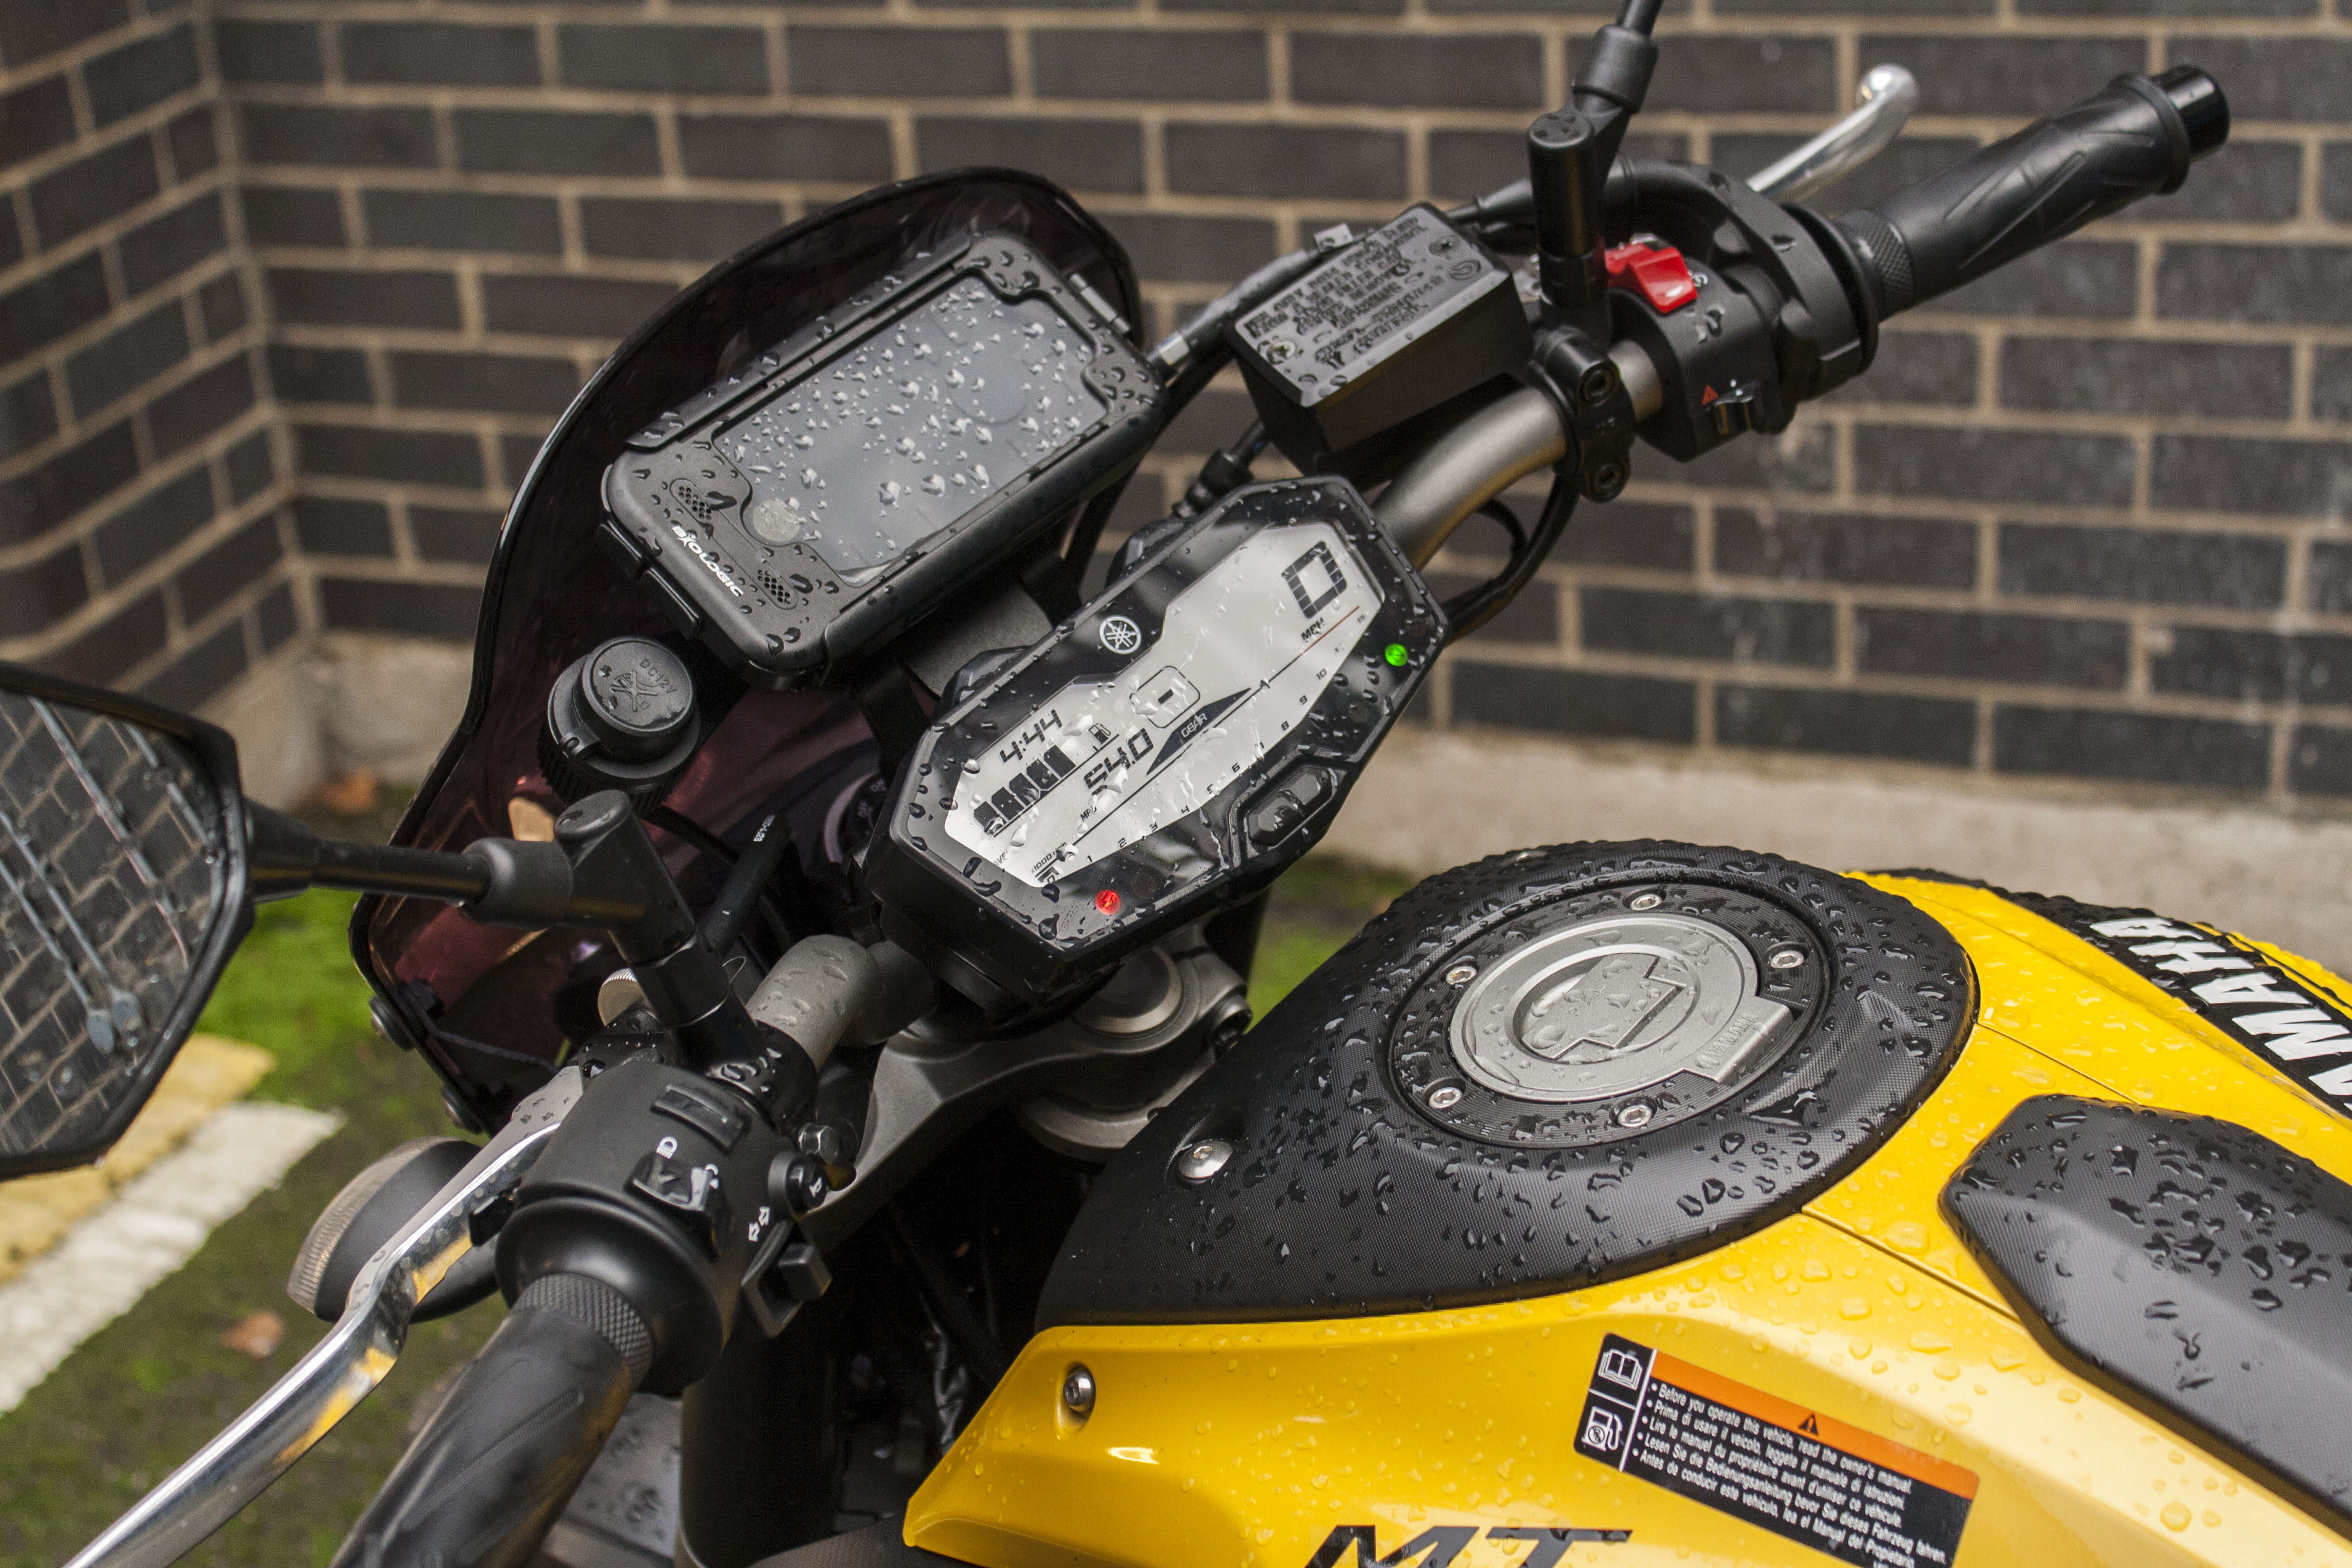 Road test: seven thoughts after seven days with an MT-07